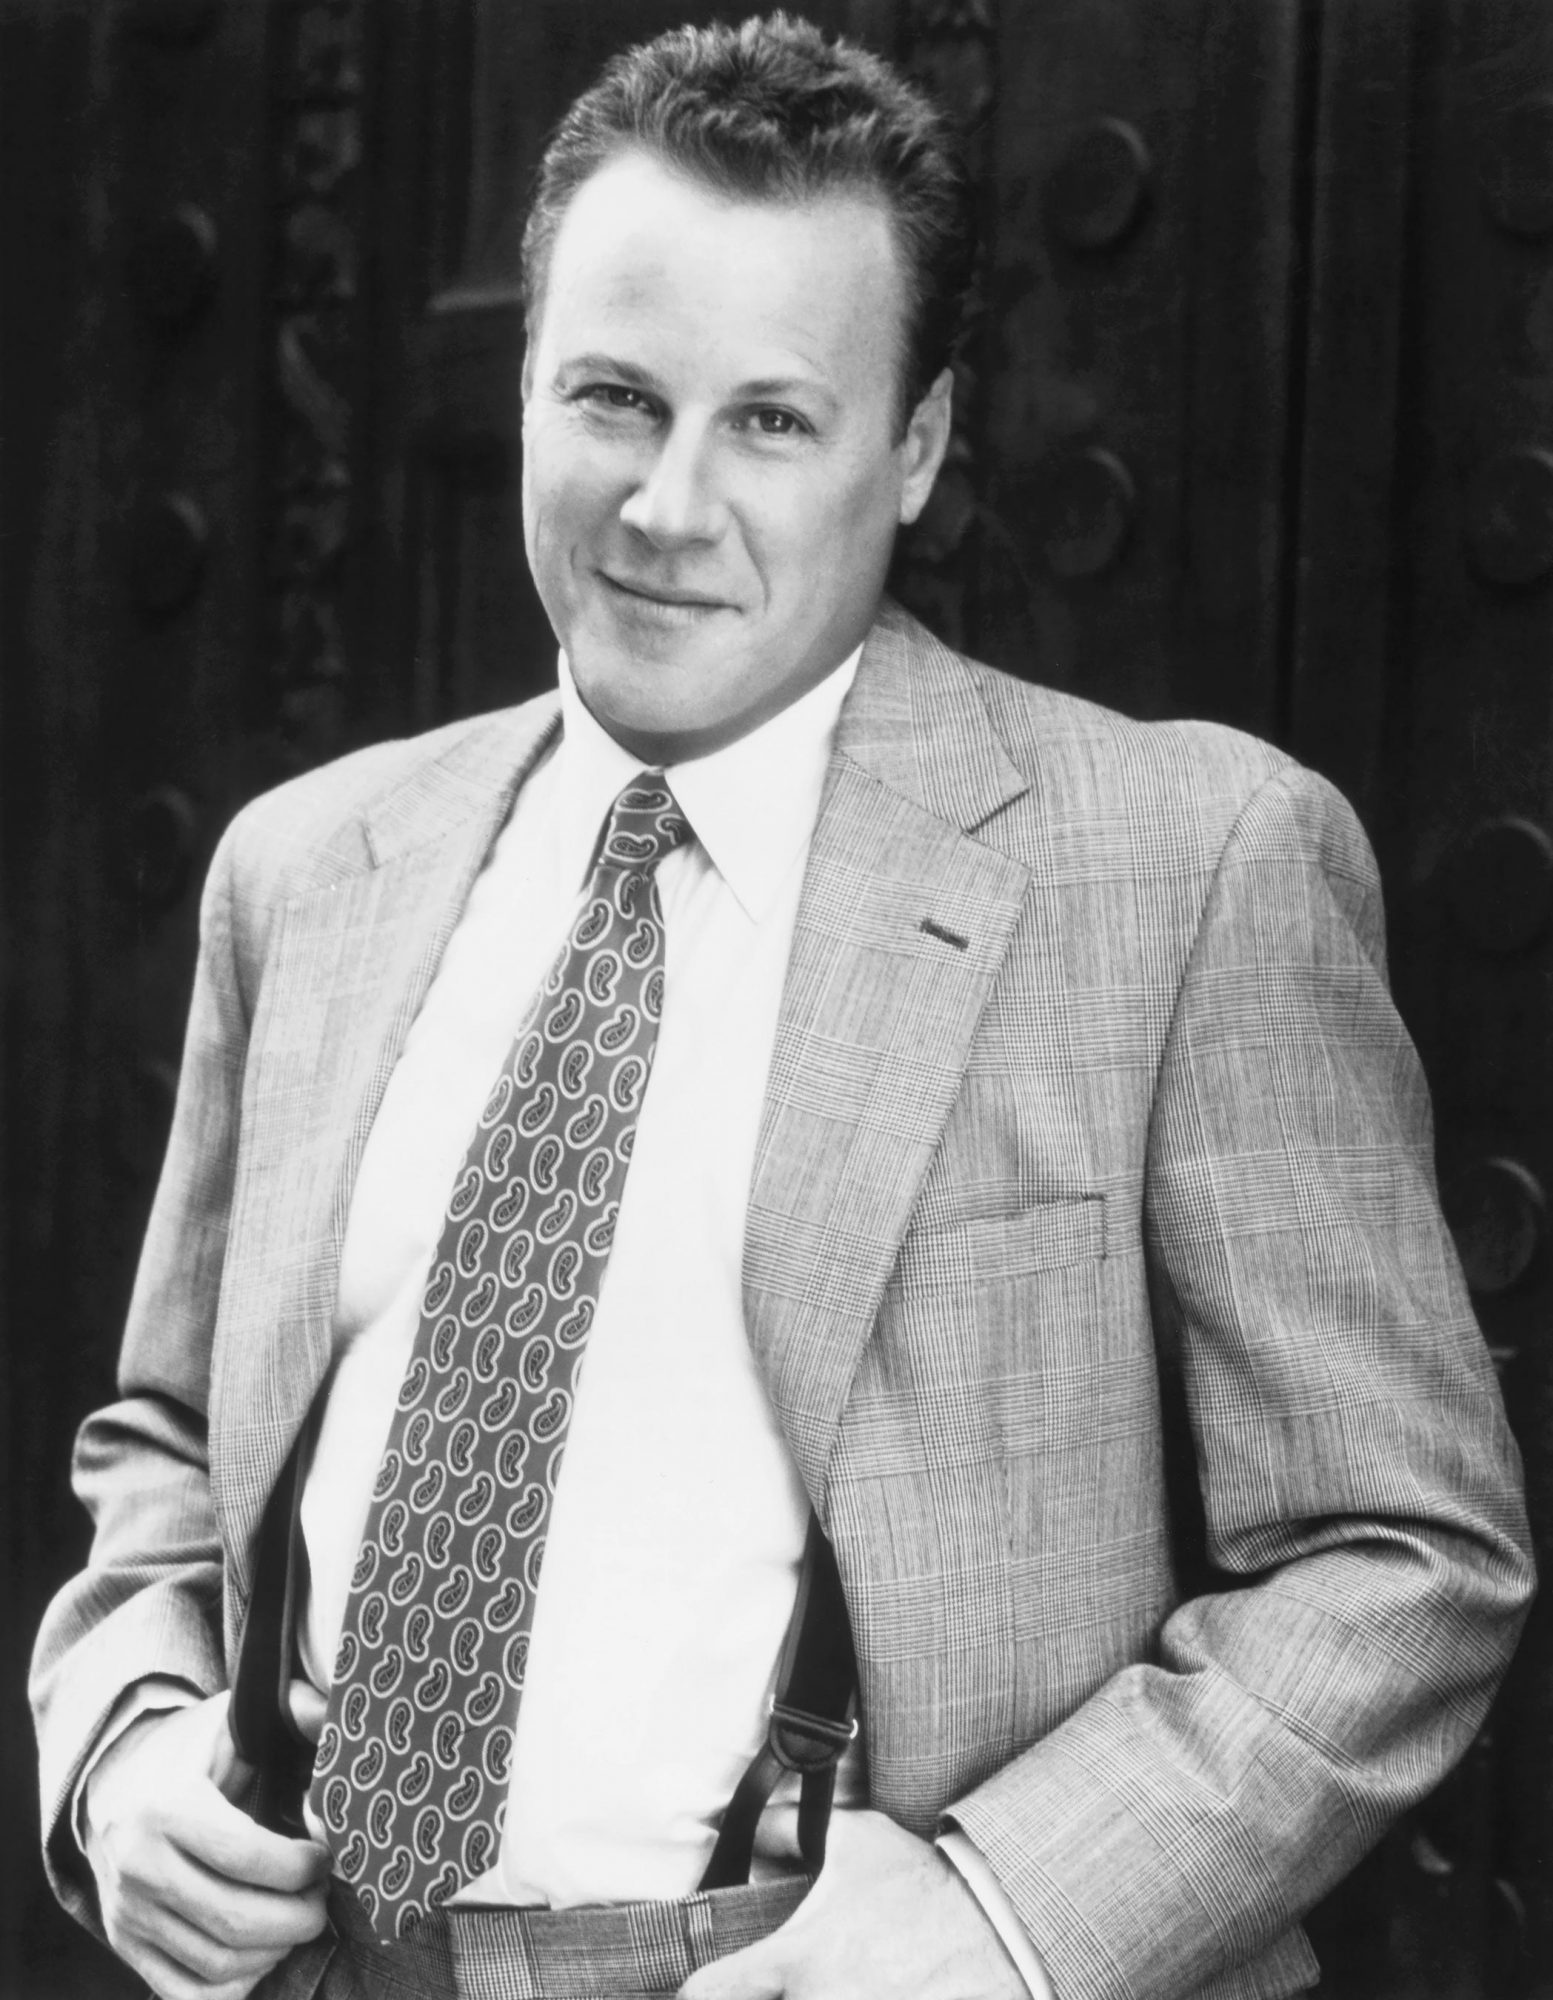 John Heard in The Client television series (1995)